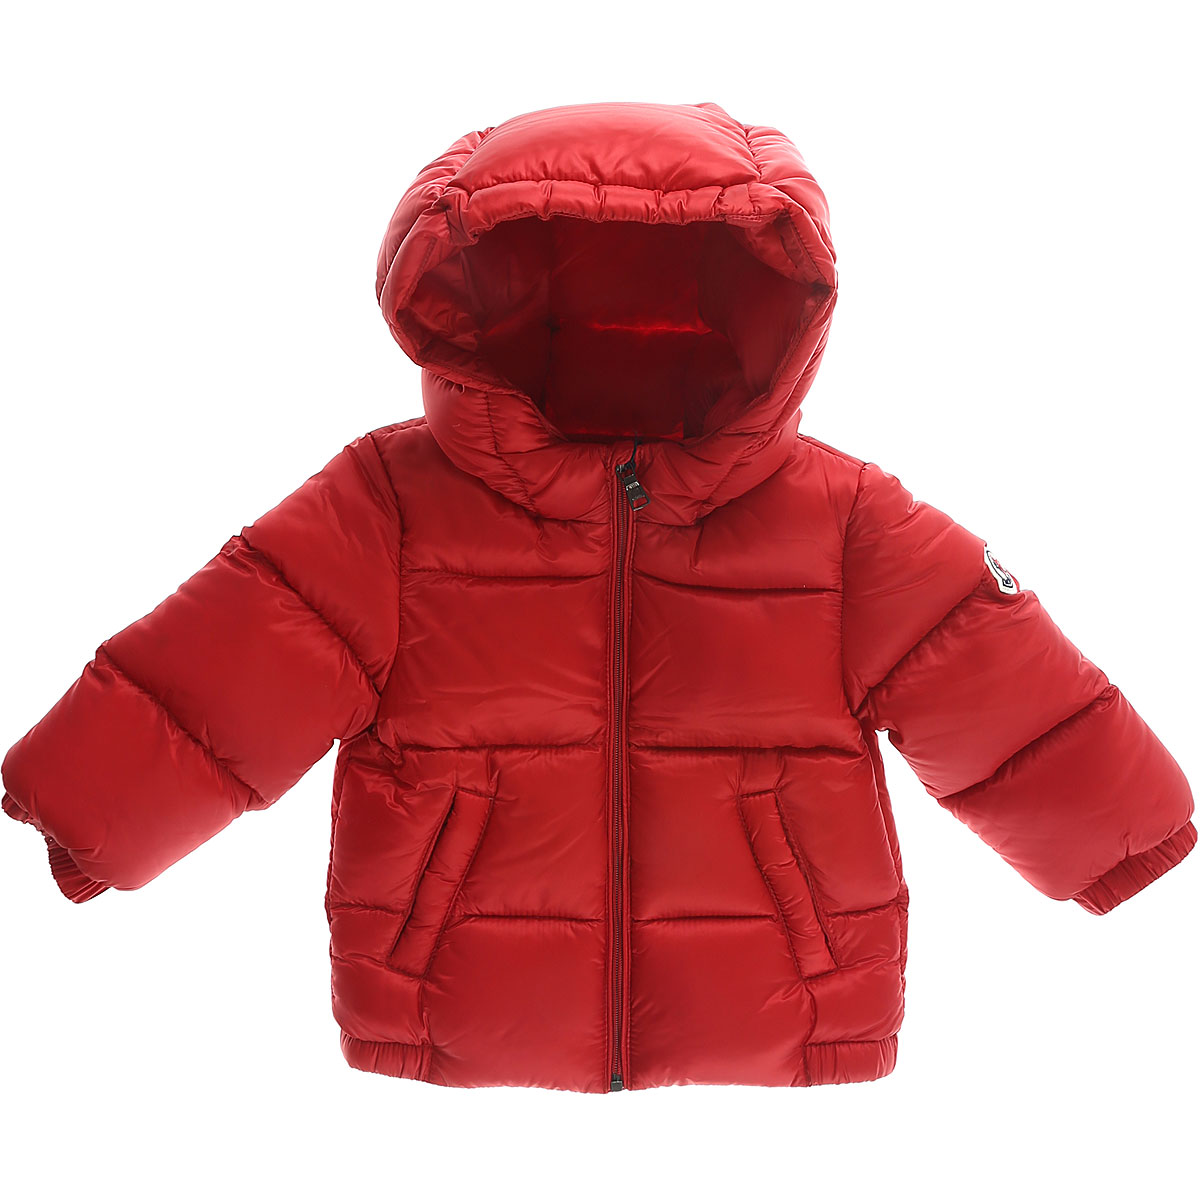 Image of Moncler Baby Down Jacket for Boys, Red, polyamide, 2017, 12M 18M 9M